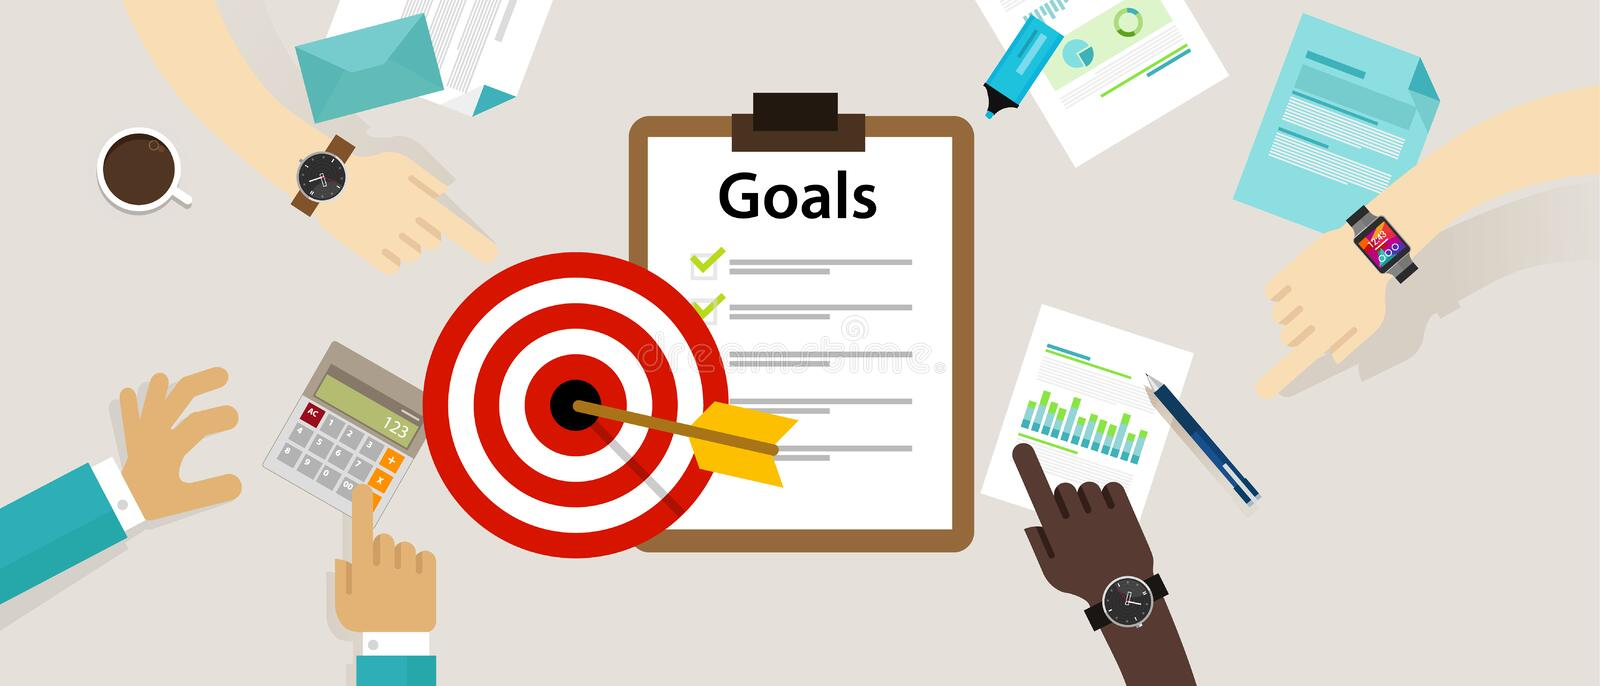 Target goals vector icon success business strategy concept team work stock illustration